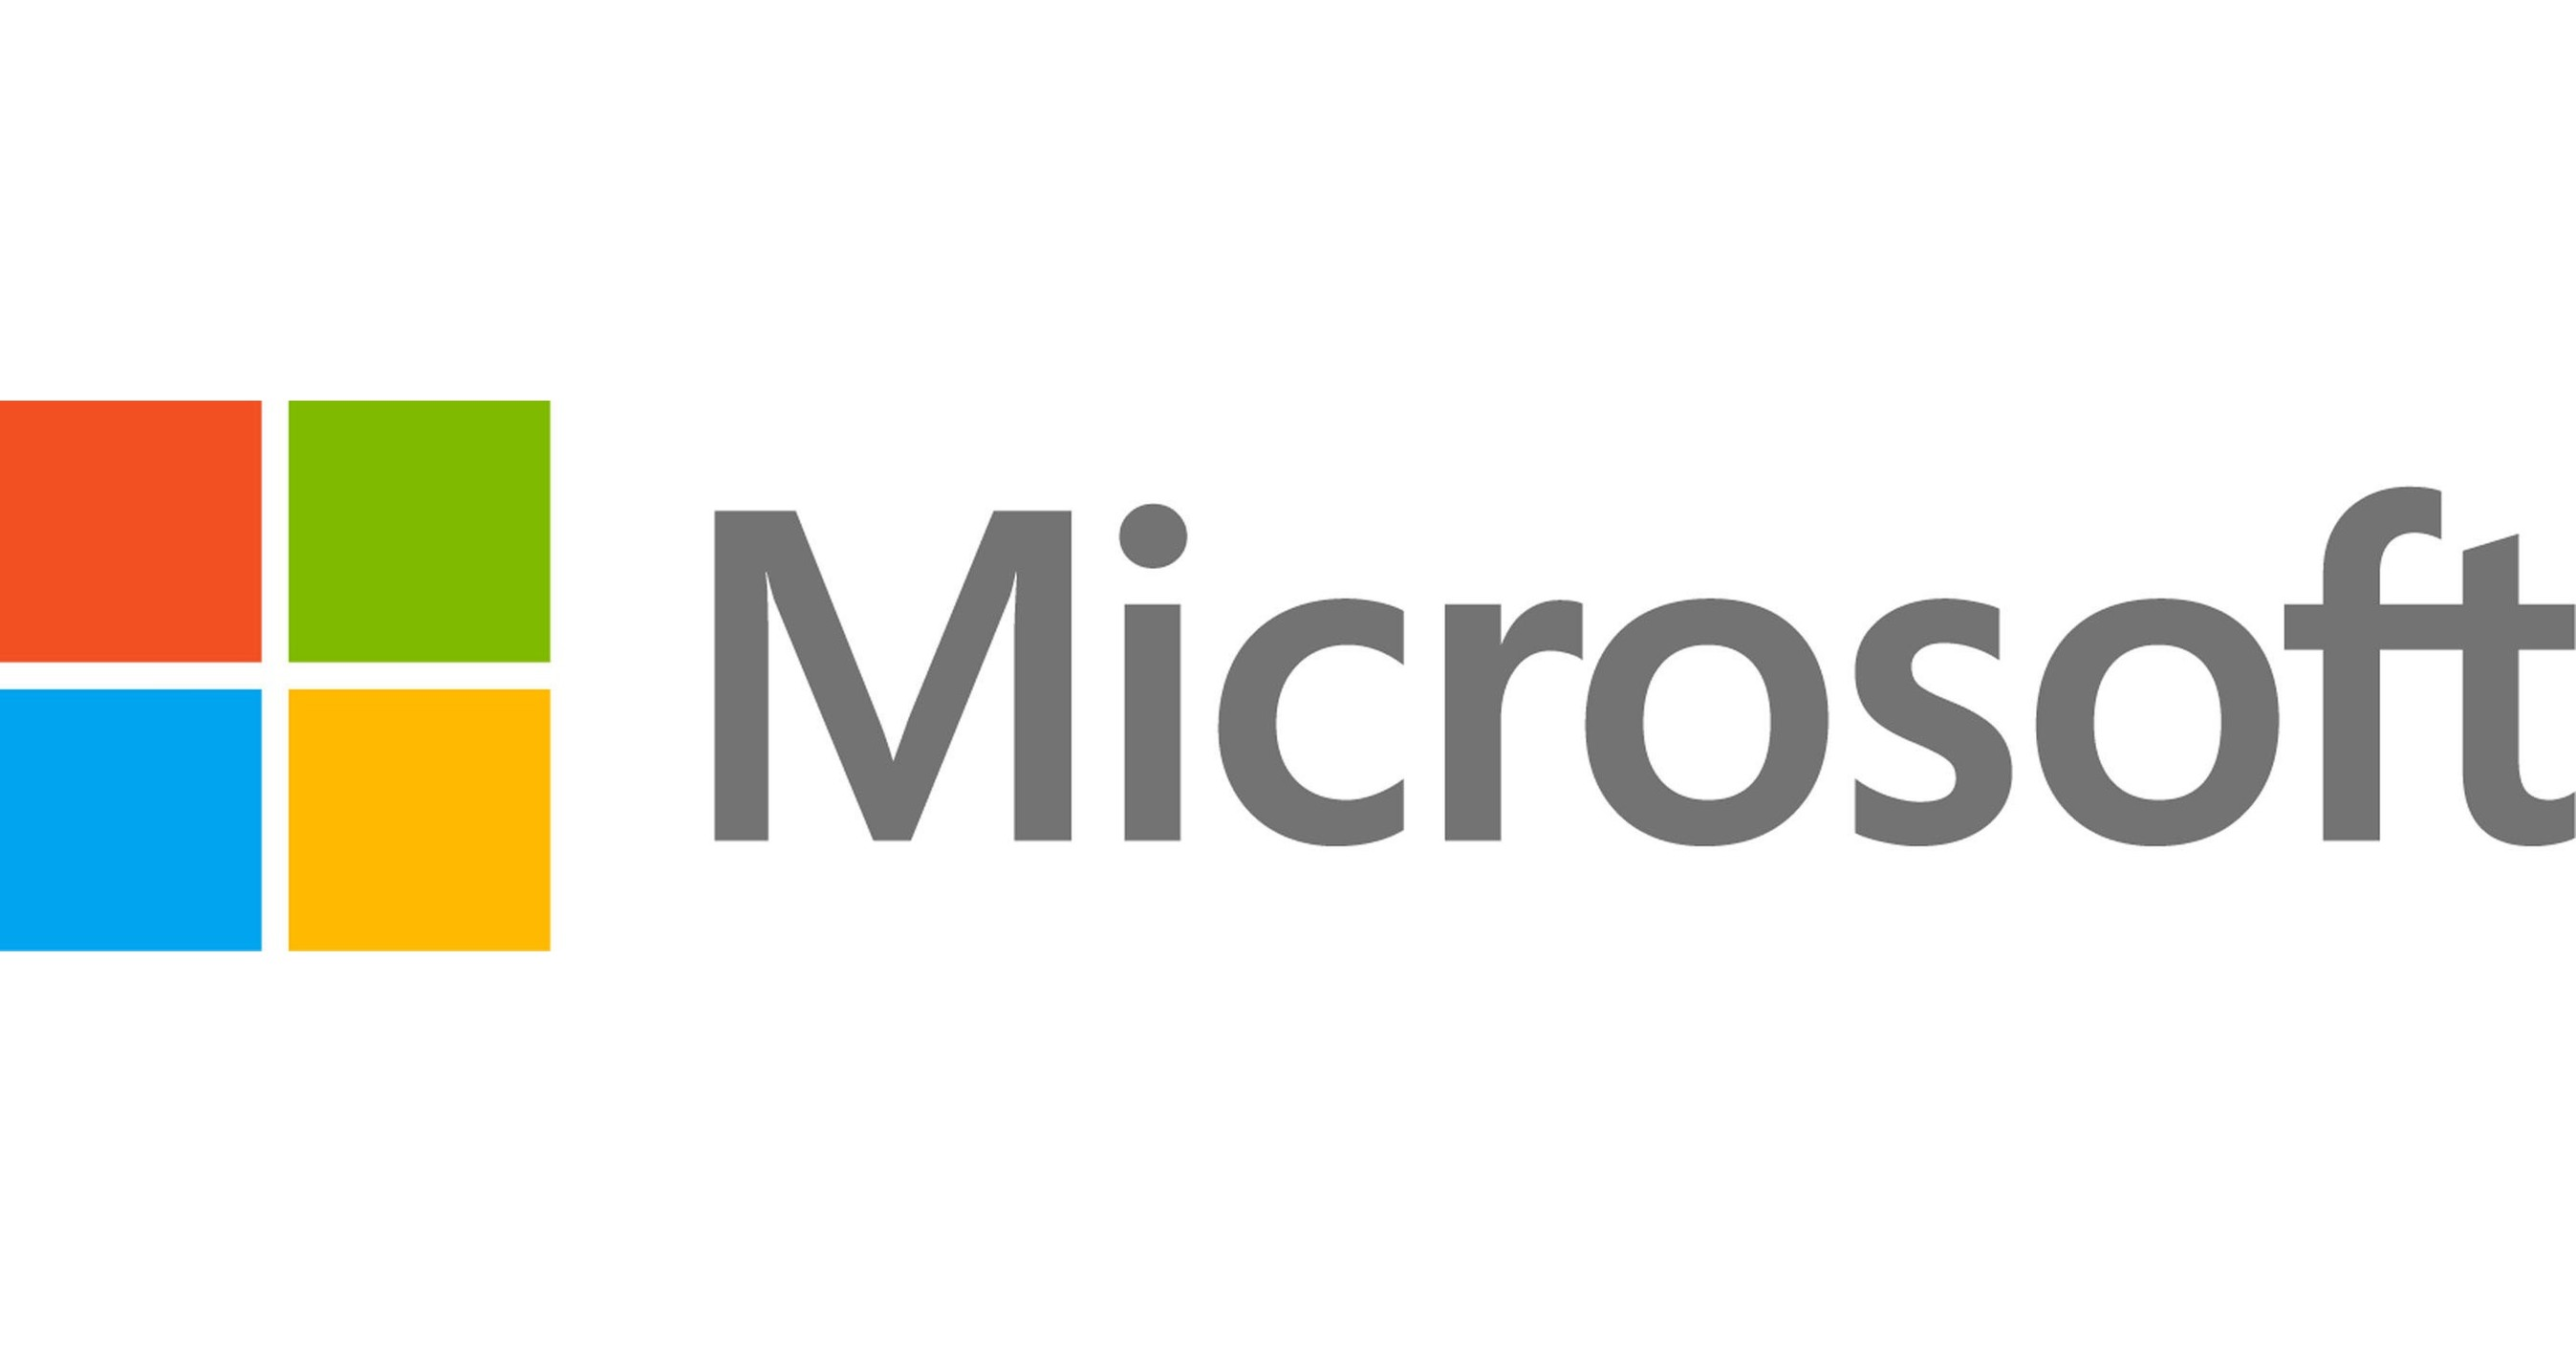 Microsoft and Eneco team up to drive sustainable business transformations: powering the cloud with clean energy